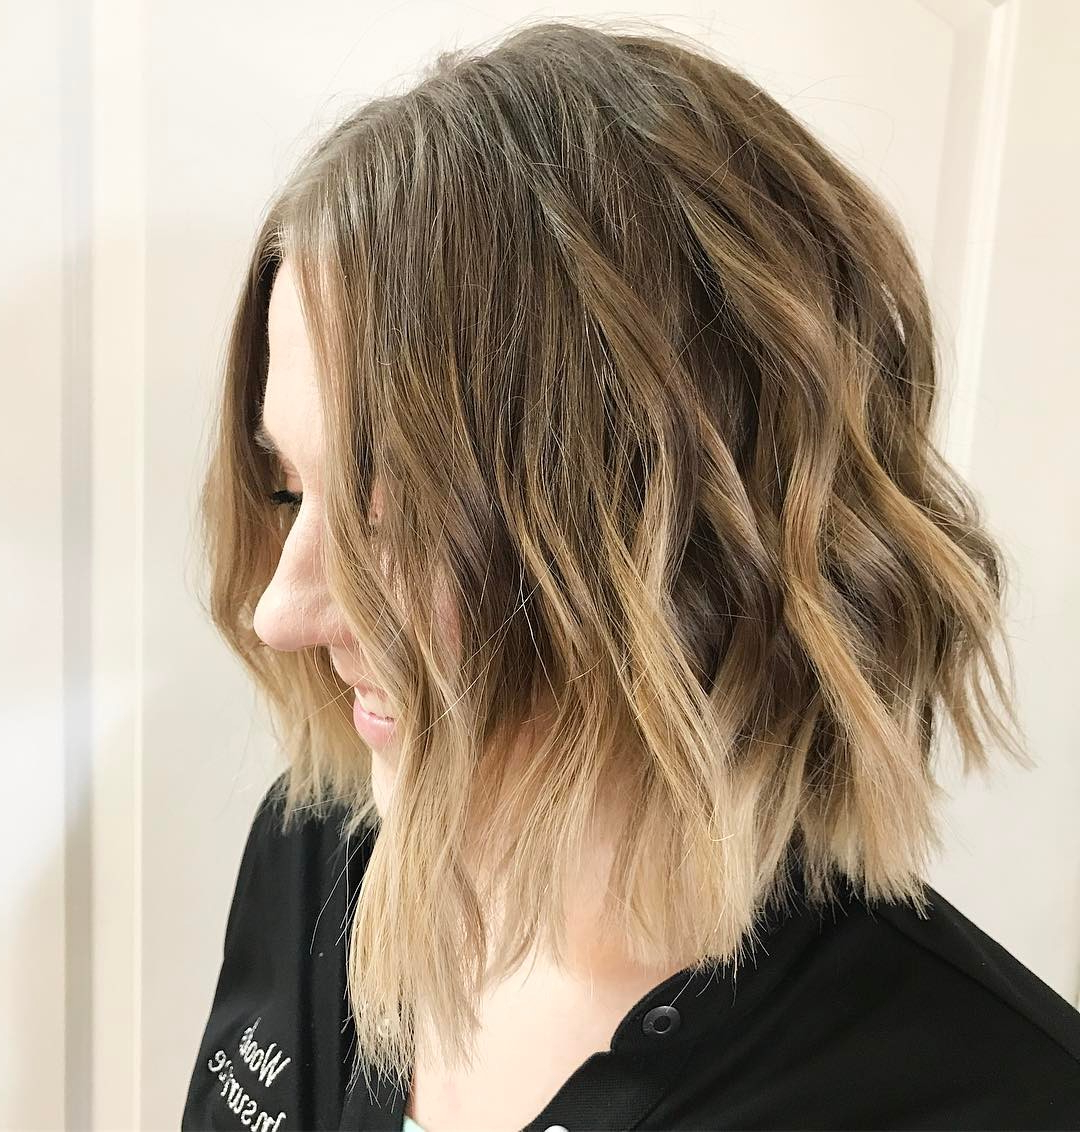 10 Layered Bob Hairstyles – Look Fab In New Blonde Shades! – Popular Within White Blonde Curly Layered Bob Hairstyles (View 4 of 25)